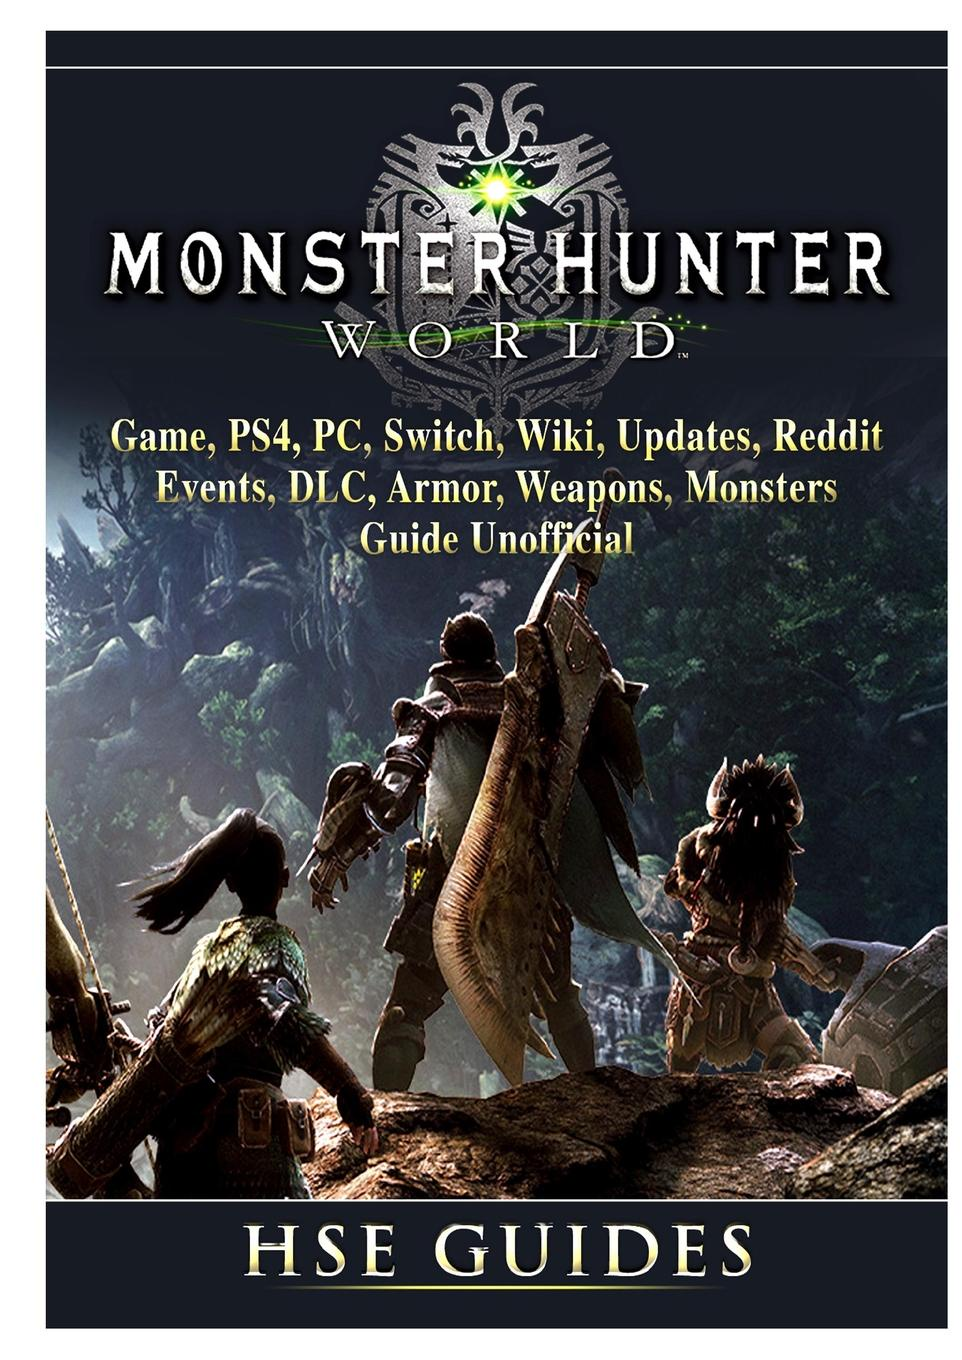 Hse Guides Monster Hunter World Game, PS4, PC, Switch, Wiki, Updates, Reddit, Events, DLC, Armor, Weapons, Monsters, Guide Unofficial joseph joyner world of warcraft guide the ultimate wow game strategy and tactics guide